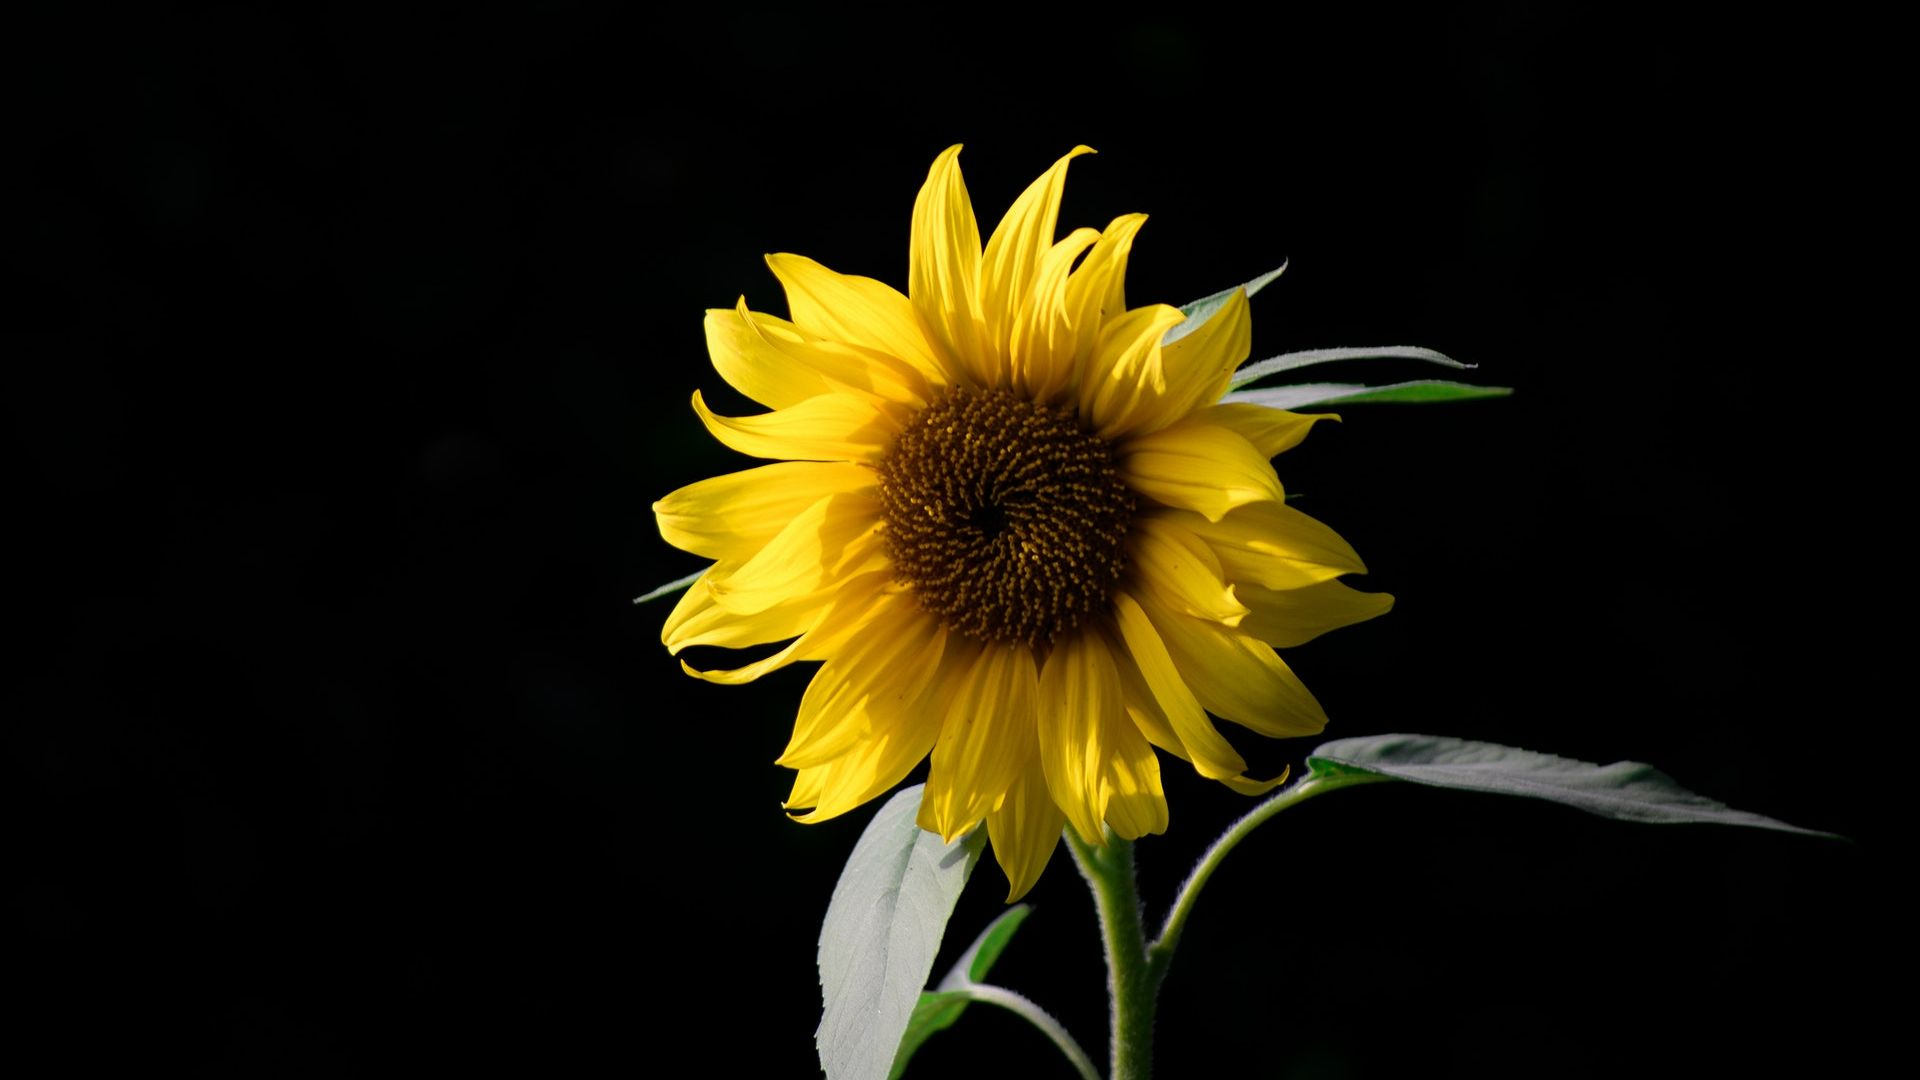 sunflower,blossom,screen background,lightlessness,with,negro,coloured,black person,black,peak,background,background signal,scope,flowers,bloom